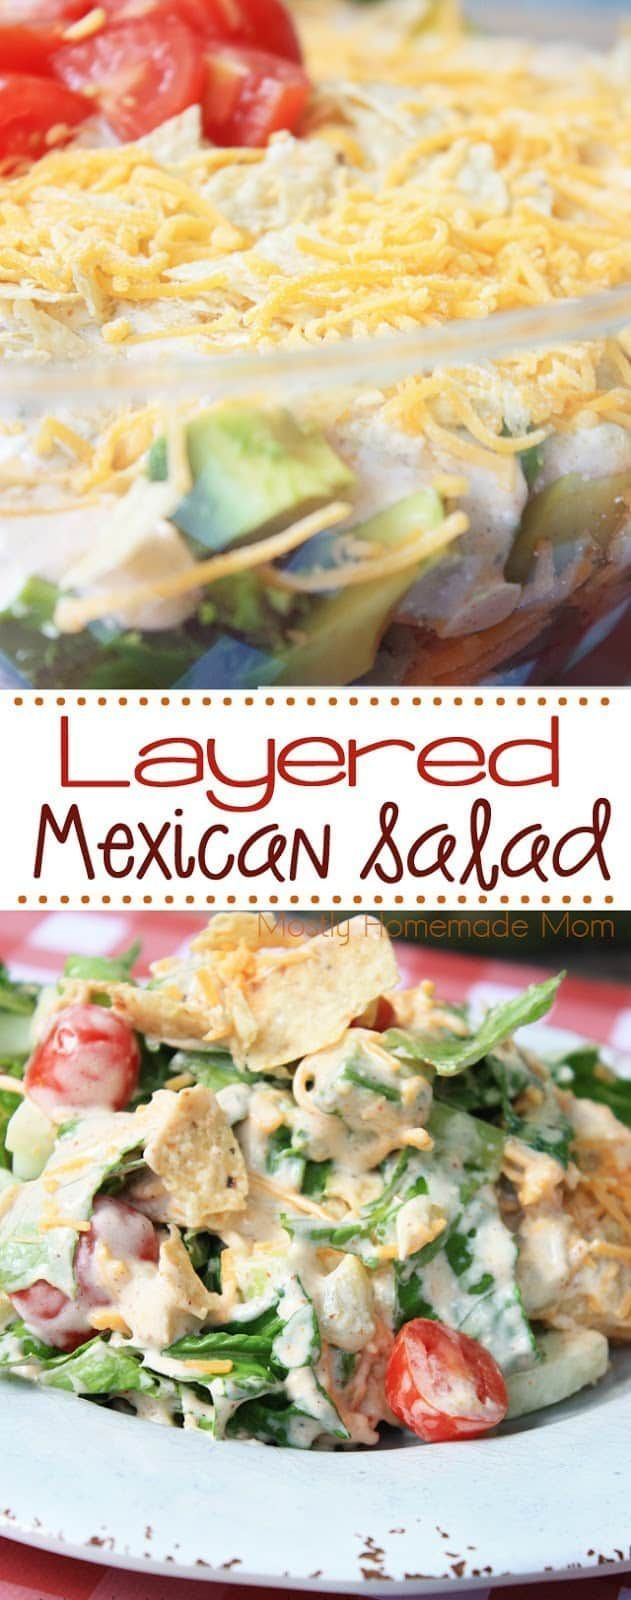 Layered Mexican Salad #mexicandishes